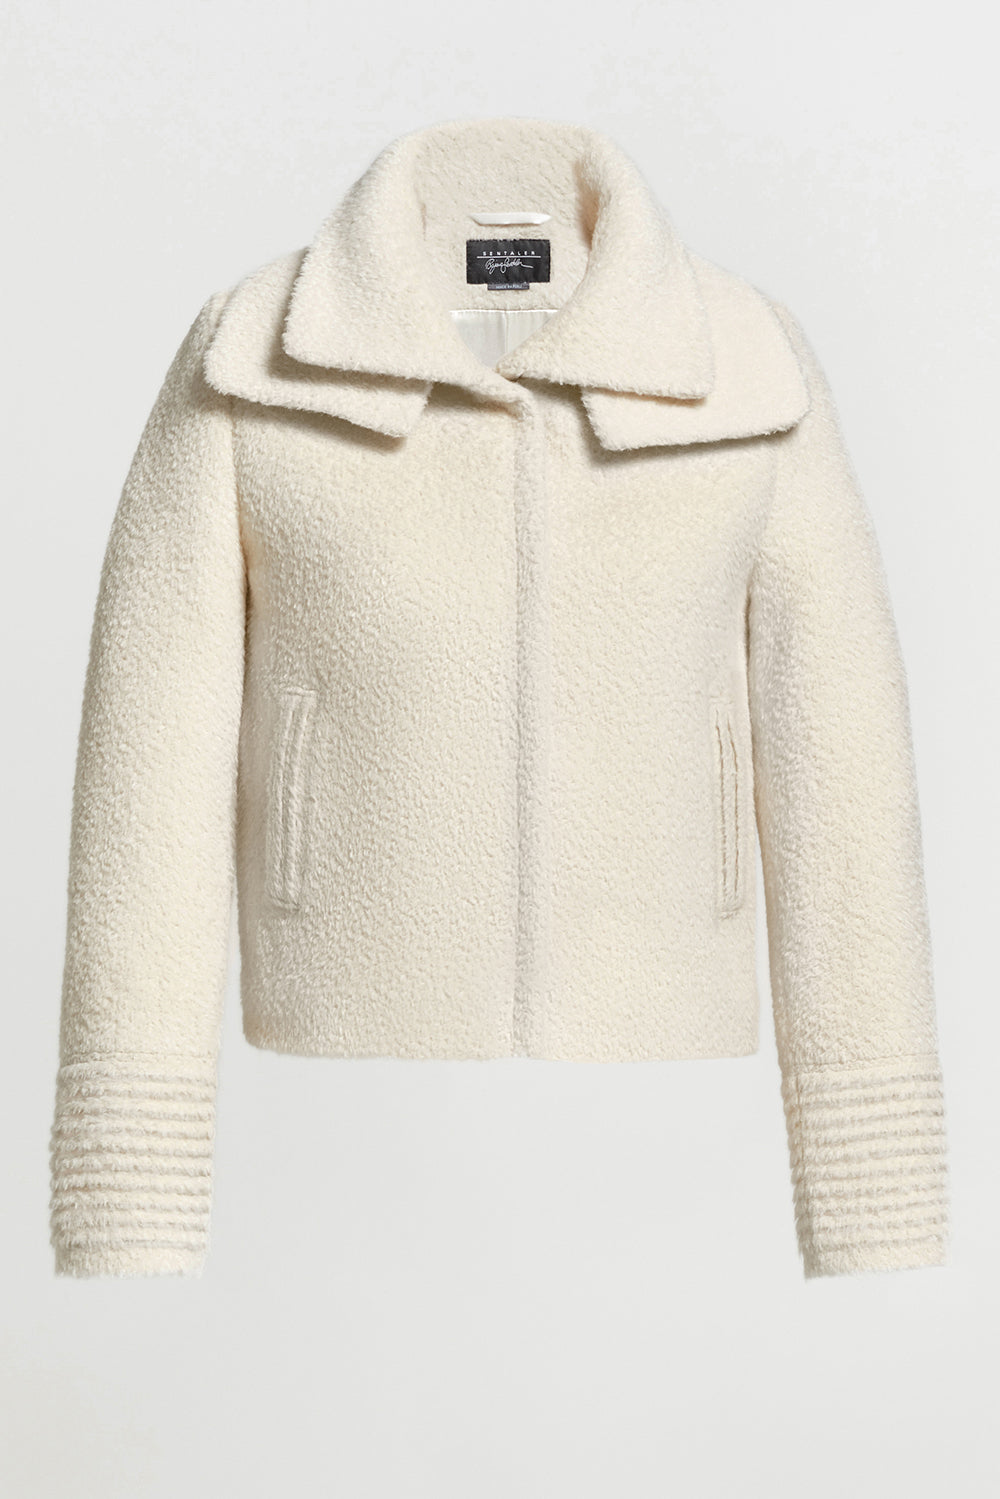 Sentaler Bouclé Alpaca Moto Jacket with Signature Double Collar featured in Bouclé Alpaca and available in Ivory. Seen off model.